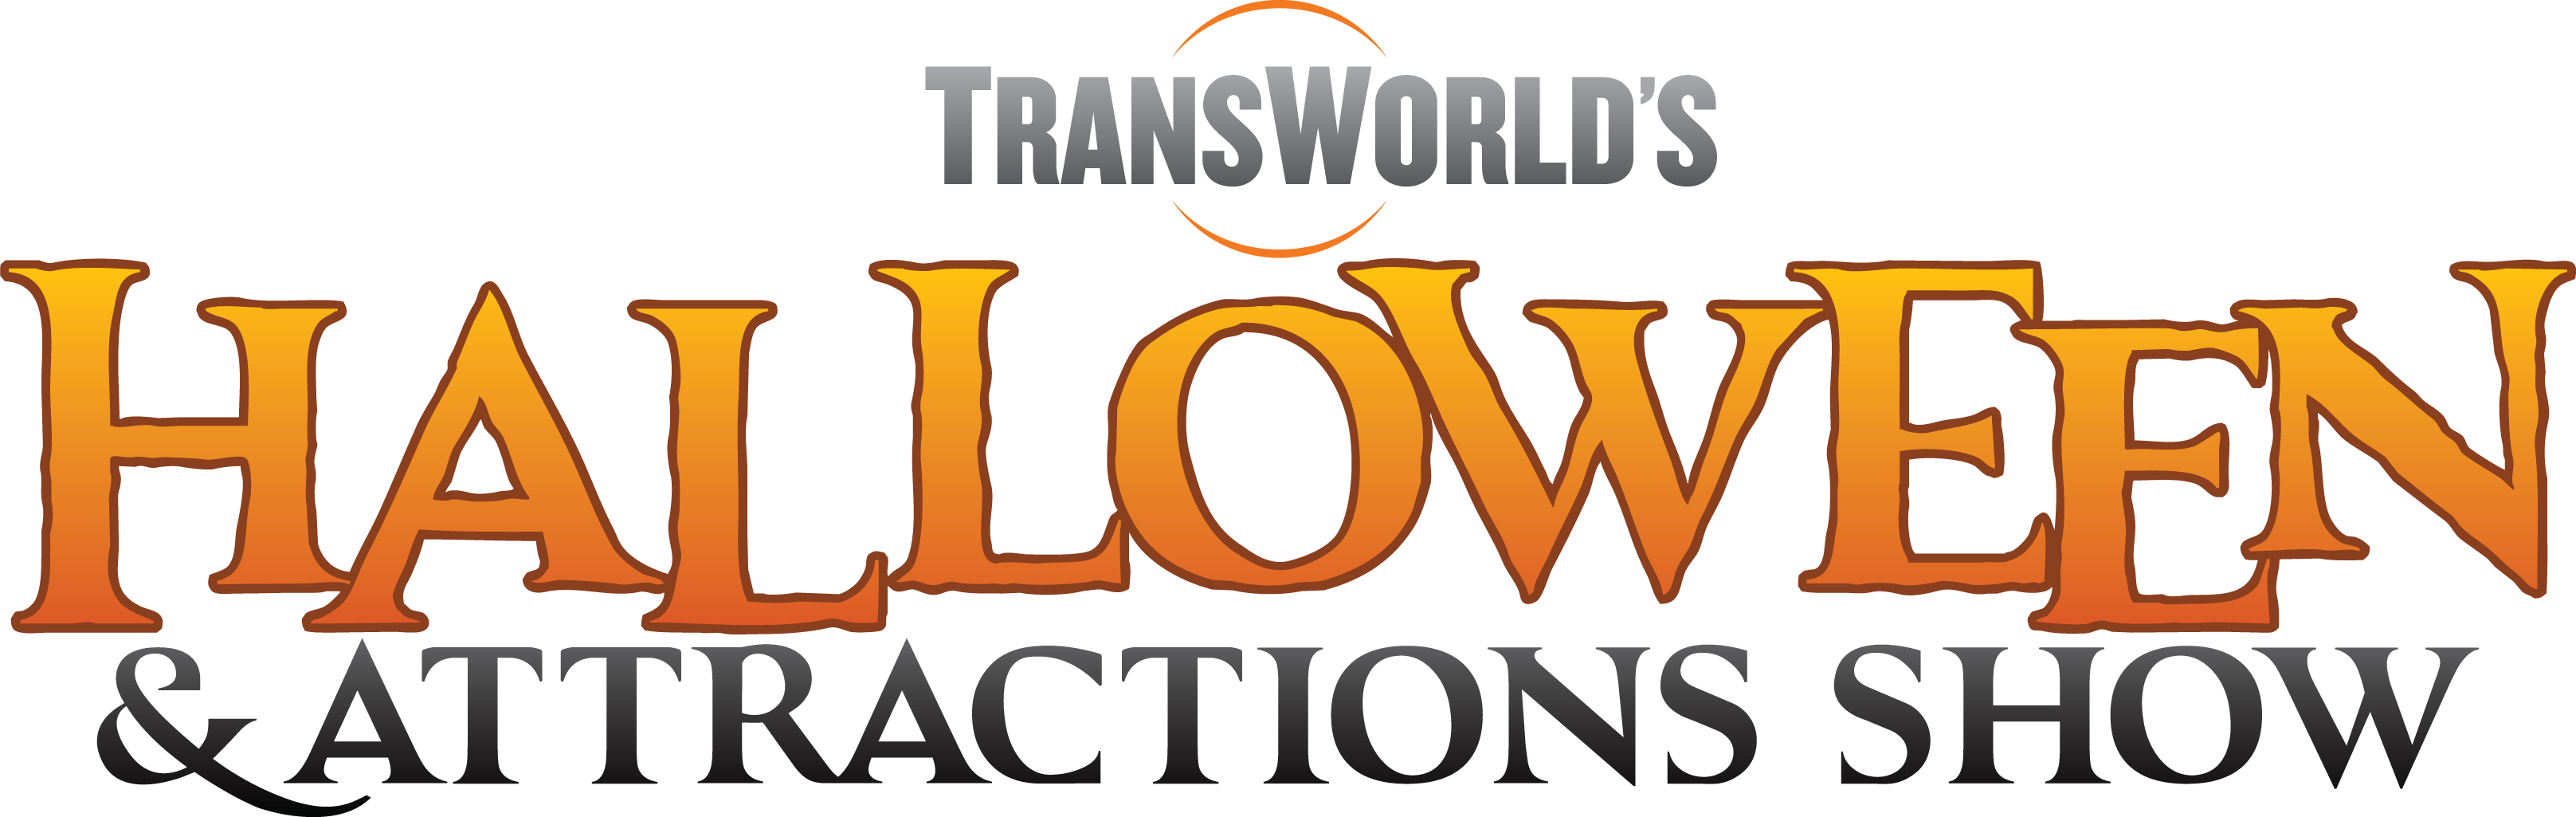 halloween-and-attractions-show-logo-color-light-background.png